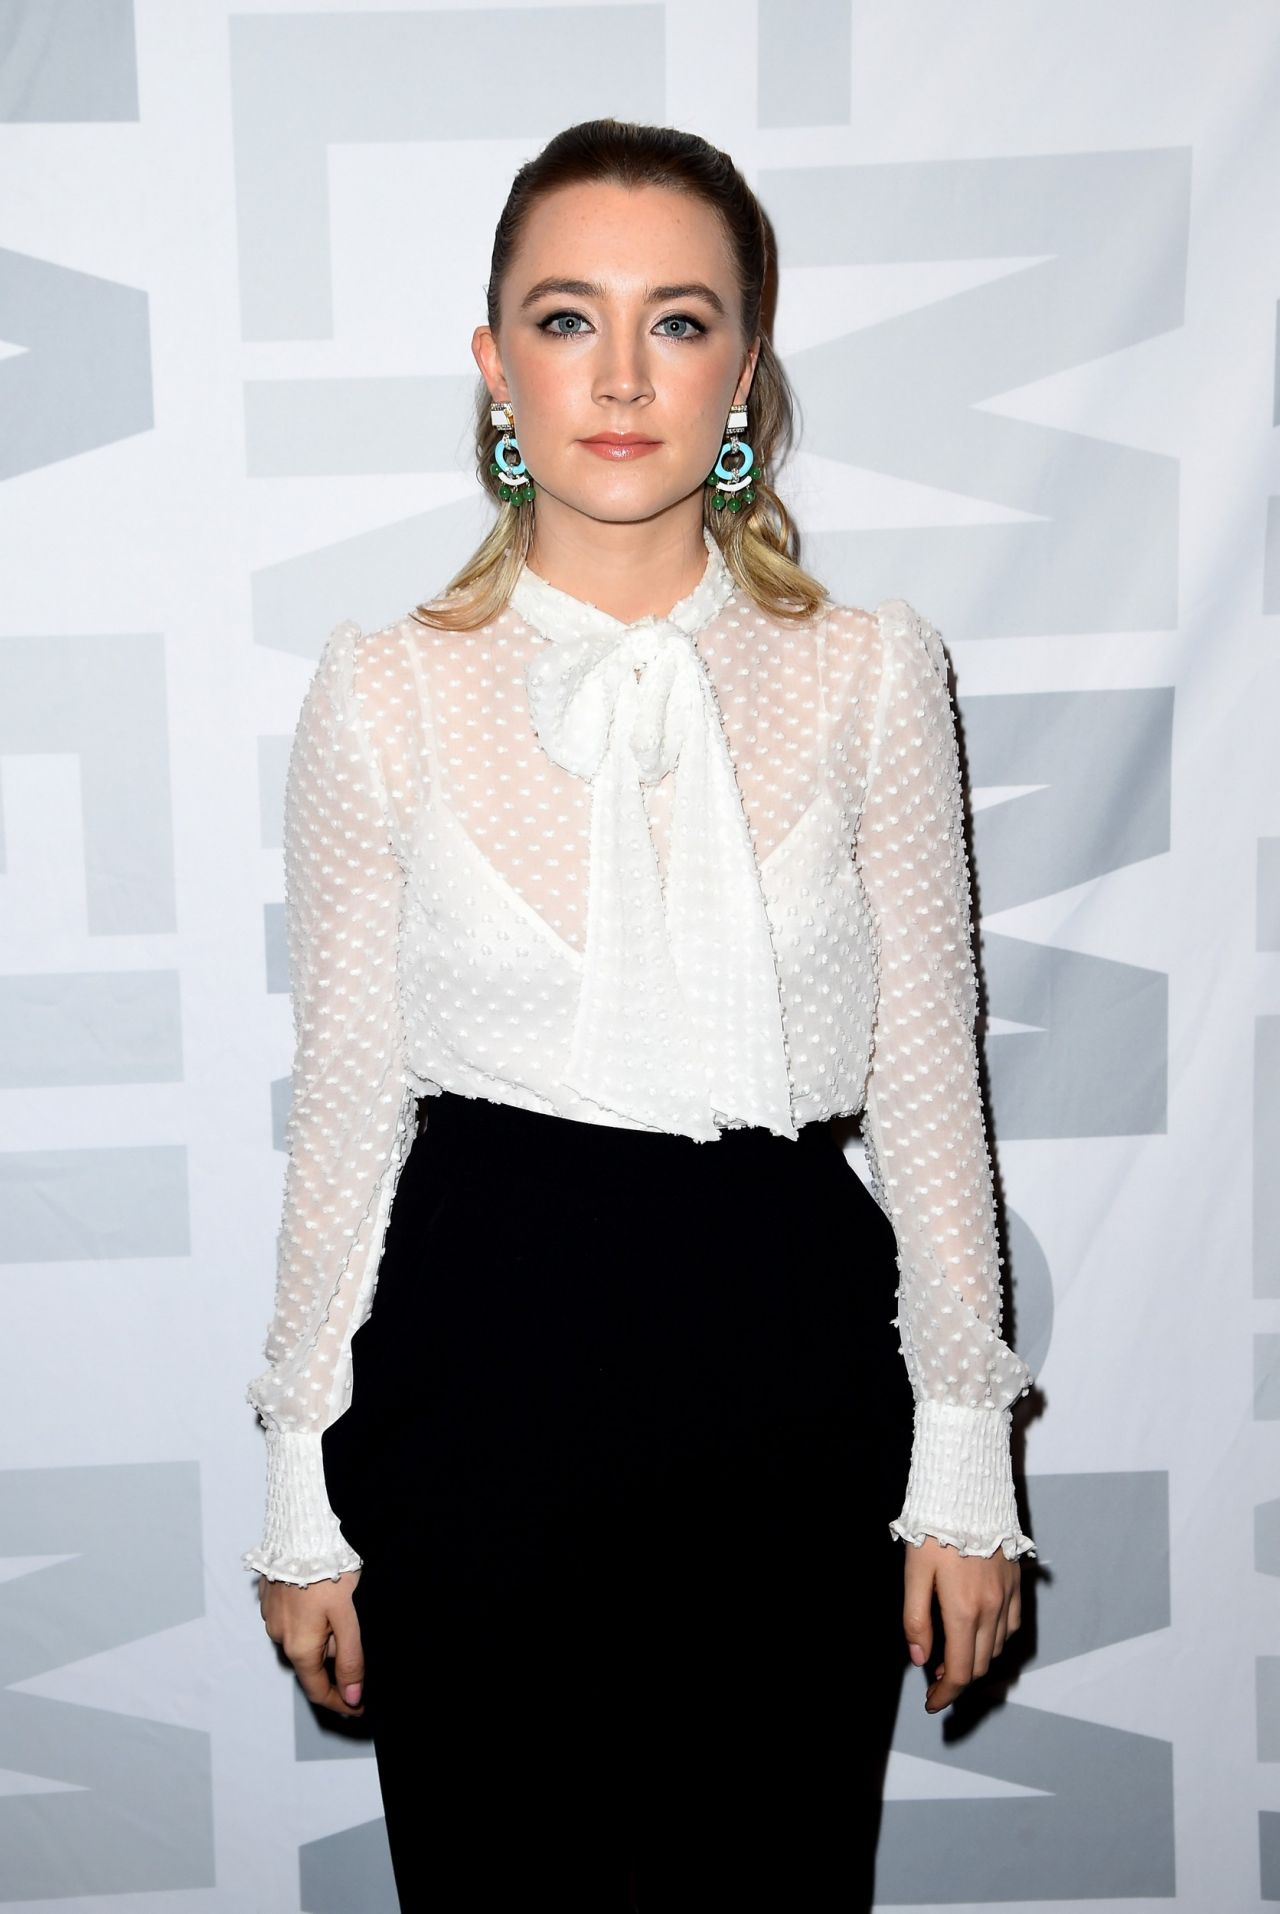 saoirse-ronan-brooklyn-screening-in-the-museum-of-modern-art-in-new-york-city-3